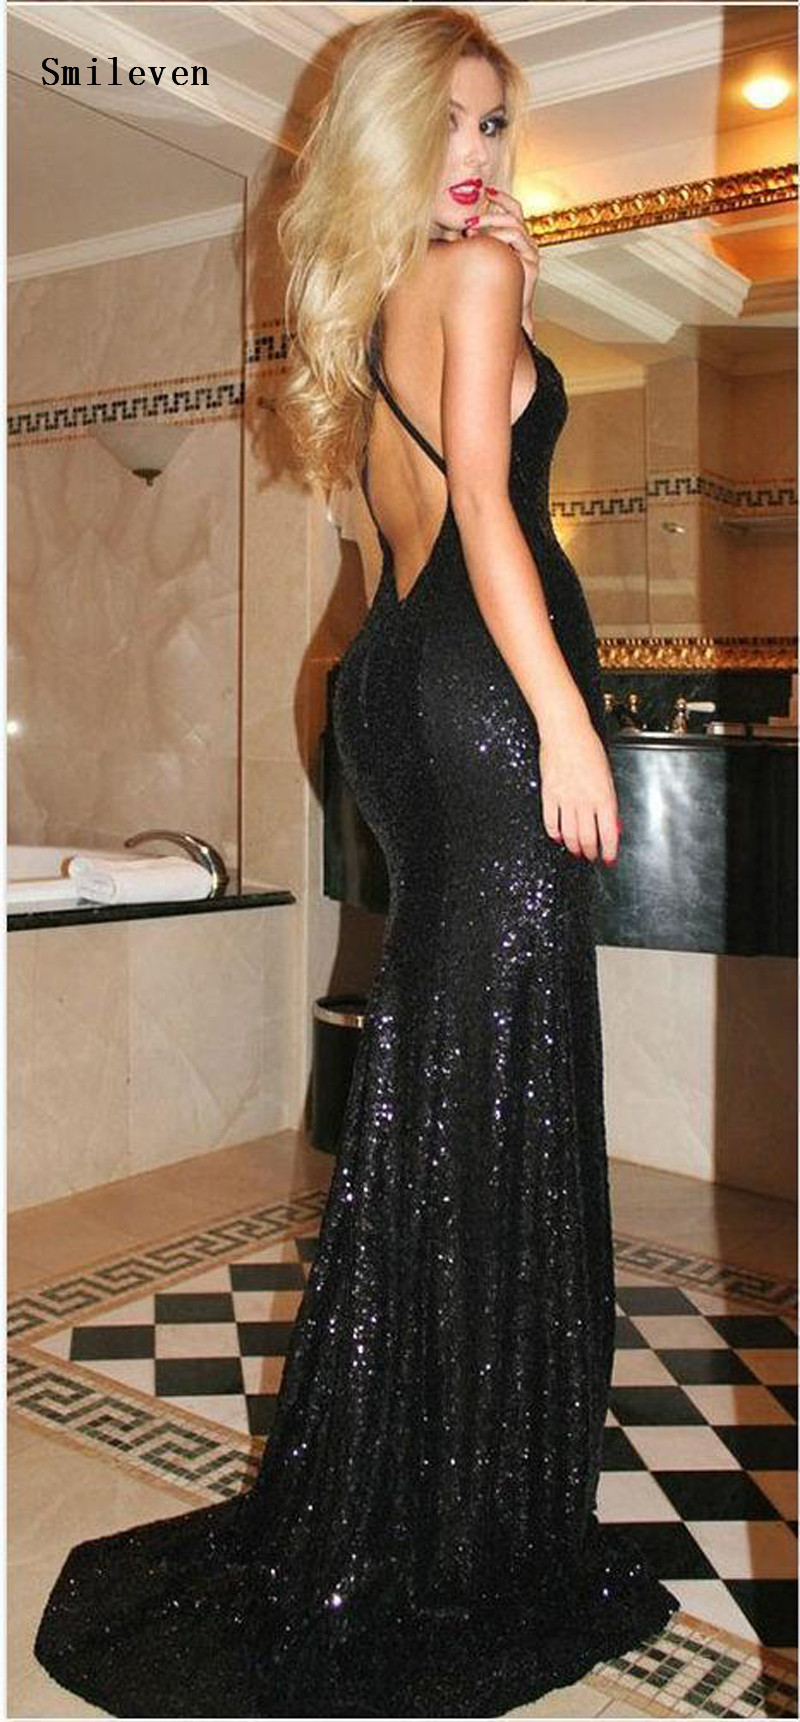 Smileven Black Sequined Mermaid Evening Dresses sexy V-neck Sleeveless Long Prom Gowns Special Occasion Evening Party Gowns